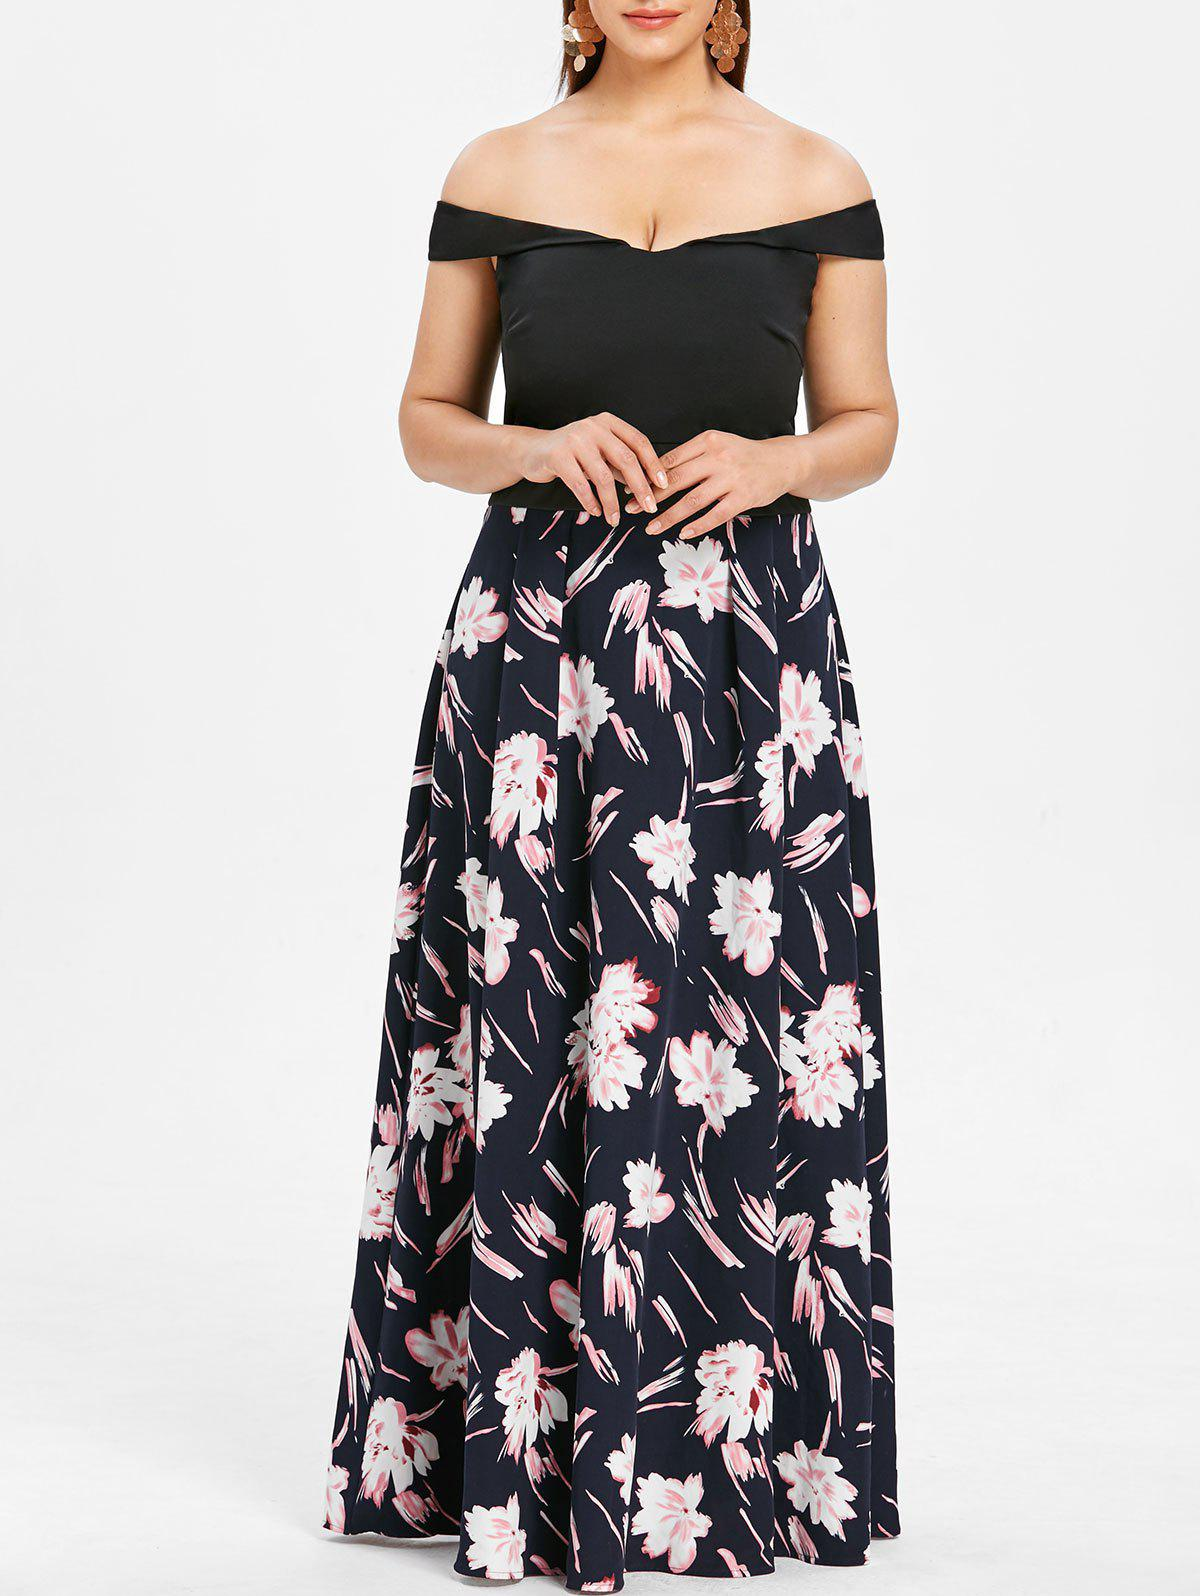 cde117f02cb5e 2019 OFF The Shoulder Plus Size Floral Print Maxi Dress | Rosegal.com